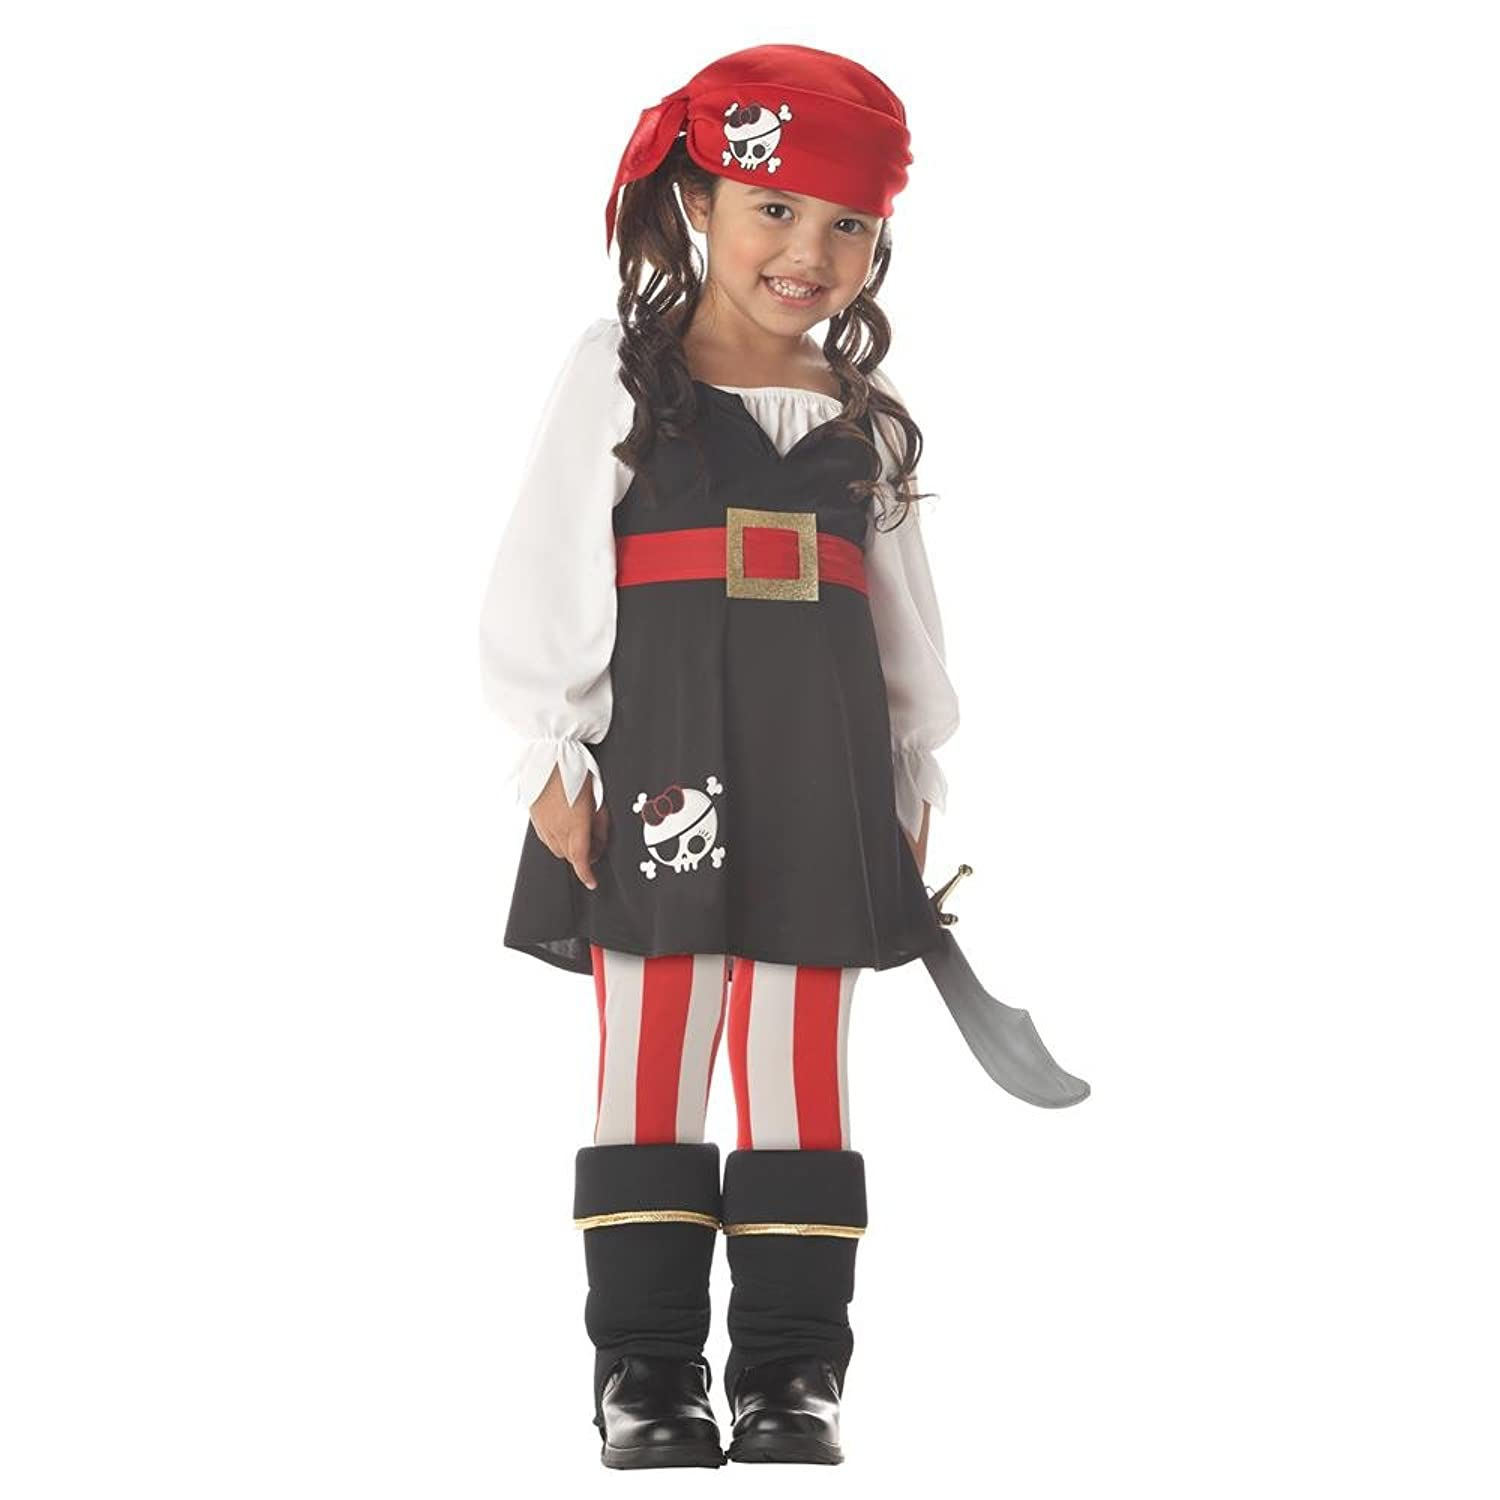 Precious Lil' Pirate Toddler Costume